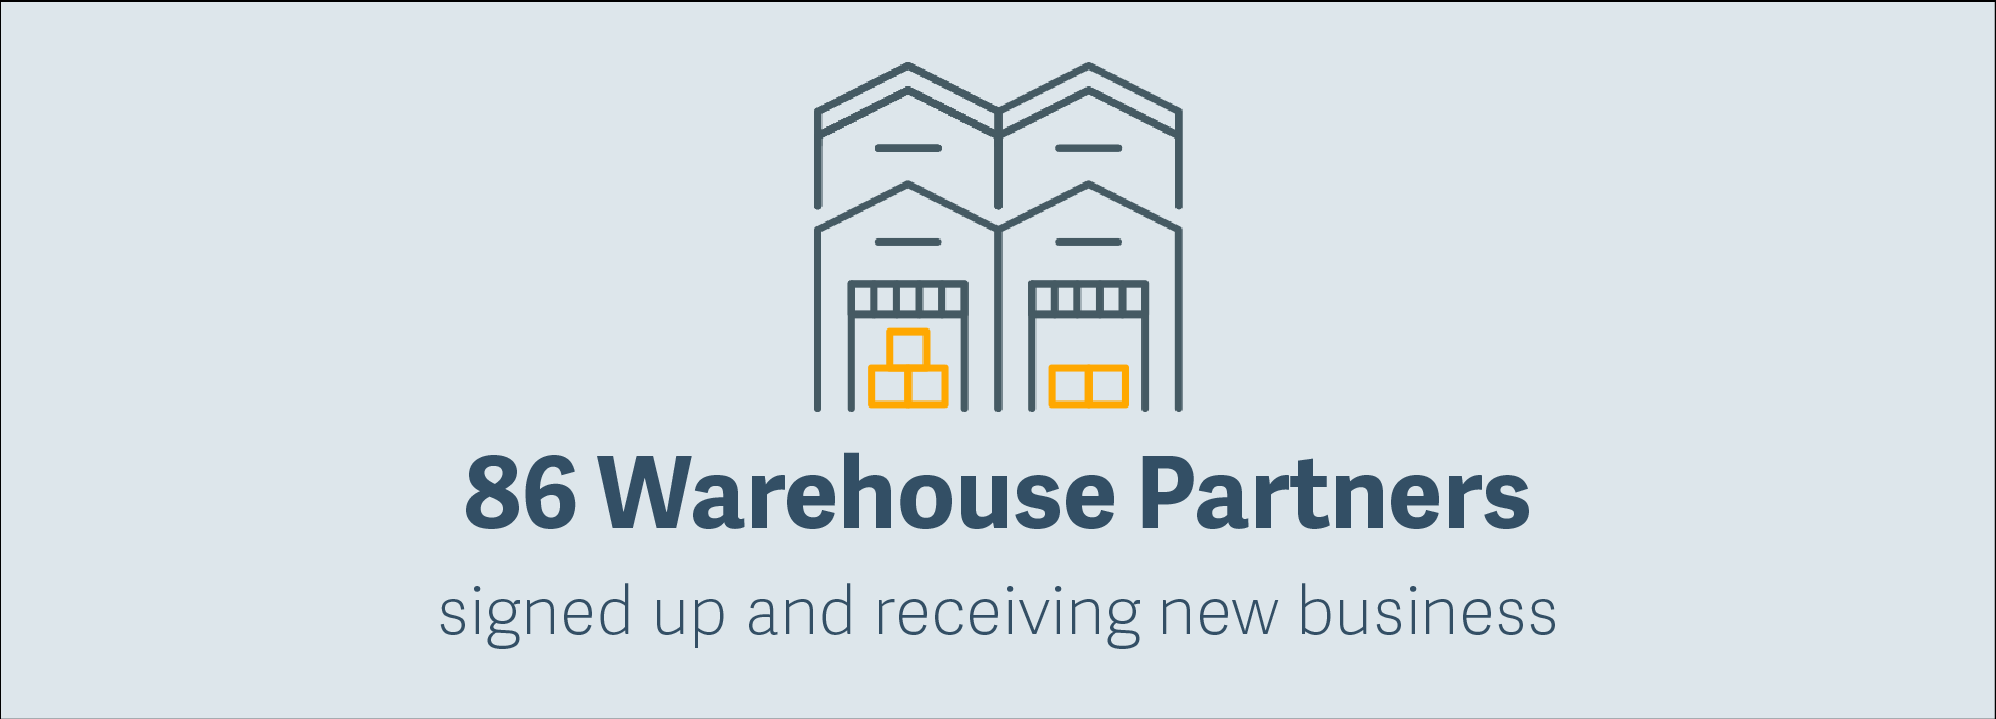 86 warehouse partners signed up